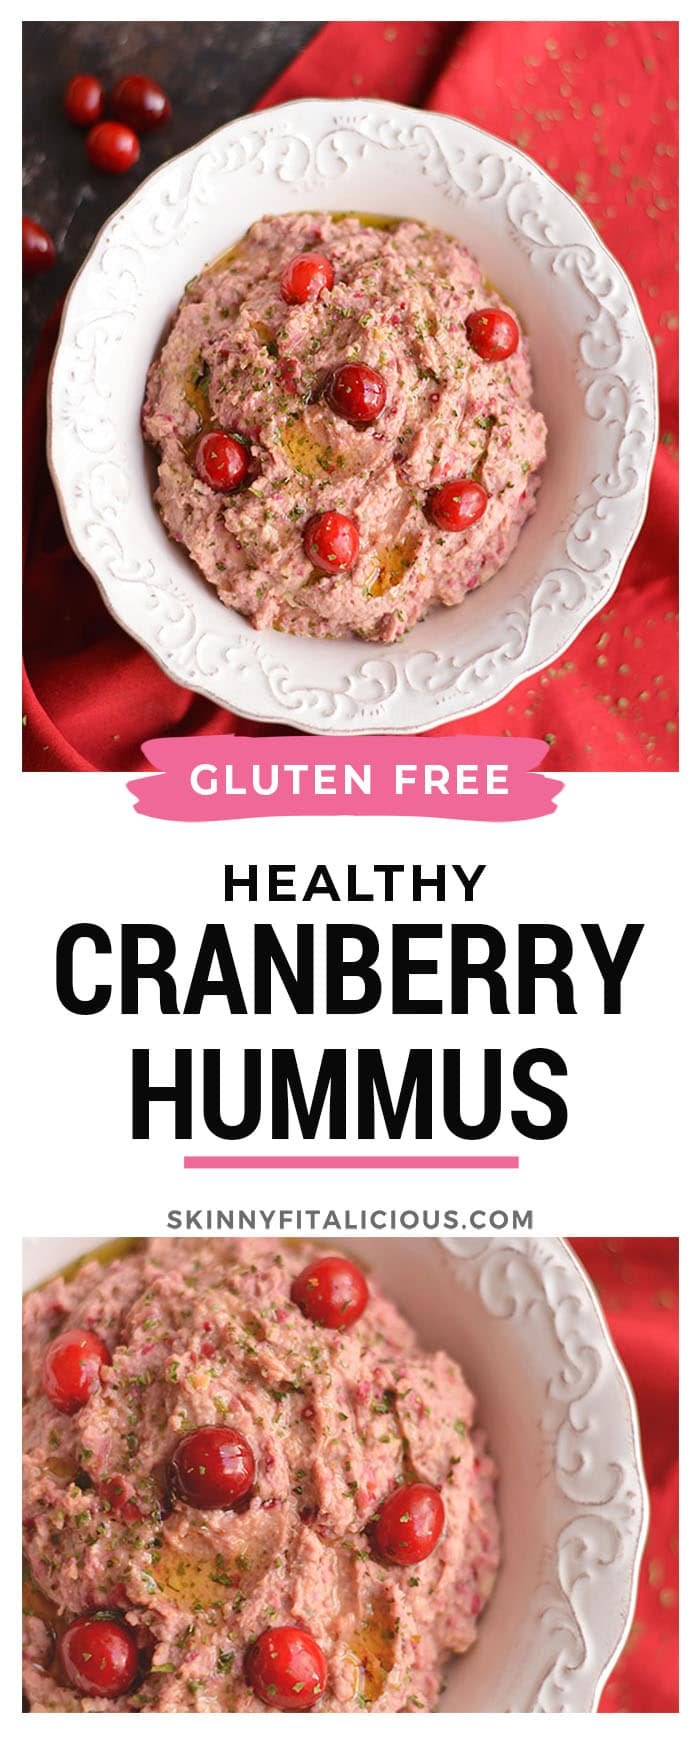 Spice things up with a Cranberry Hummus! This twist on traditional hummus makes a tasty holiday appetizer or winter snack and guaranteed to add a kick to your plate! Gluten Free + Low Calorie + Vegan